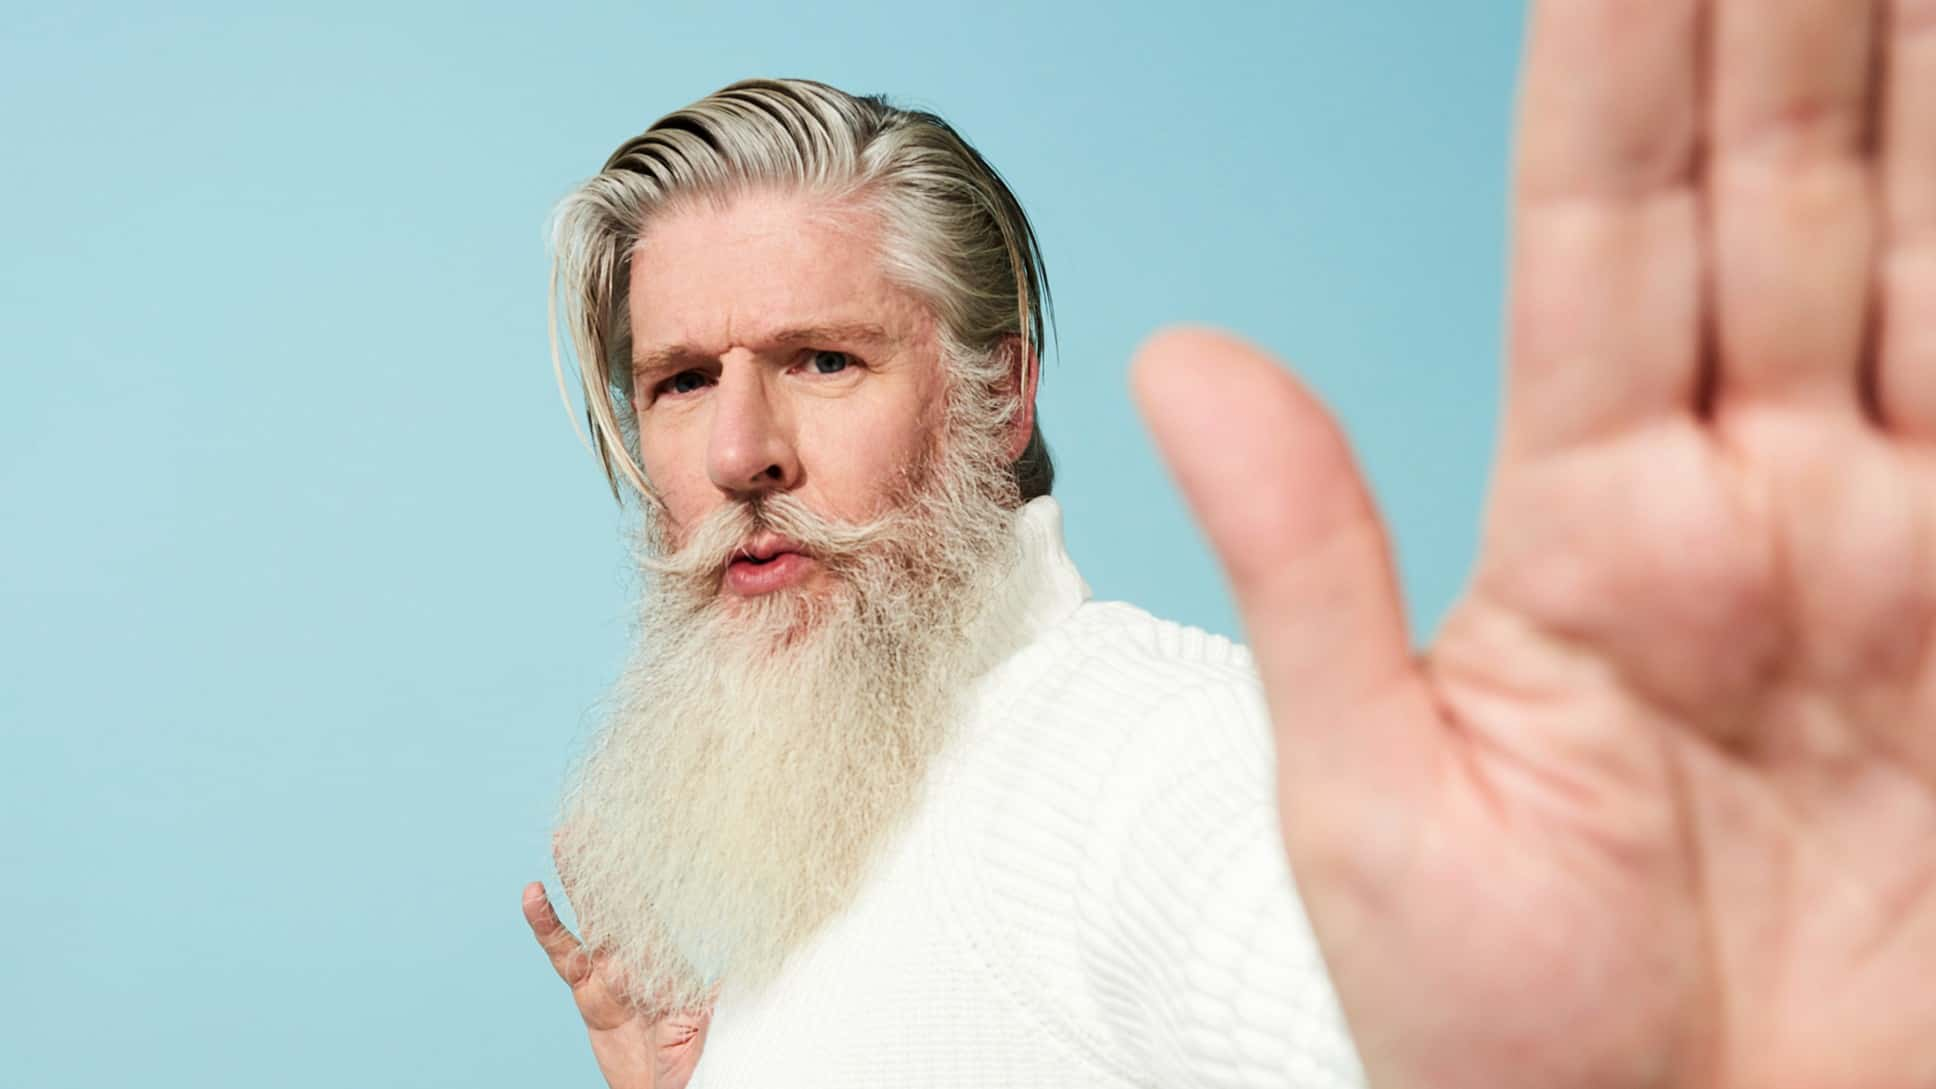 A cool white-bearded man holds his hand up signalling you should halt.